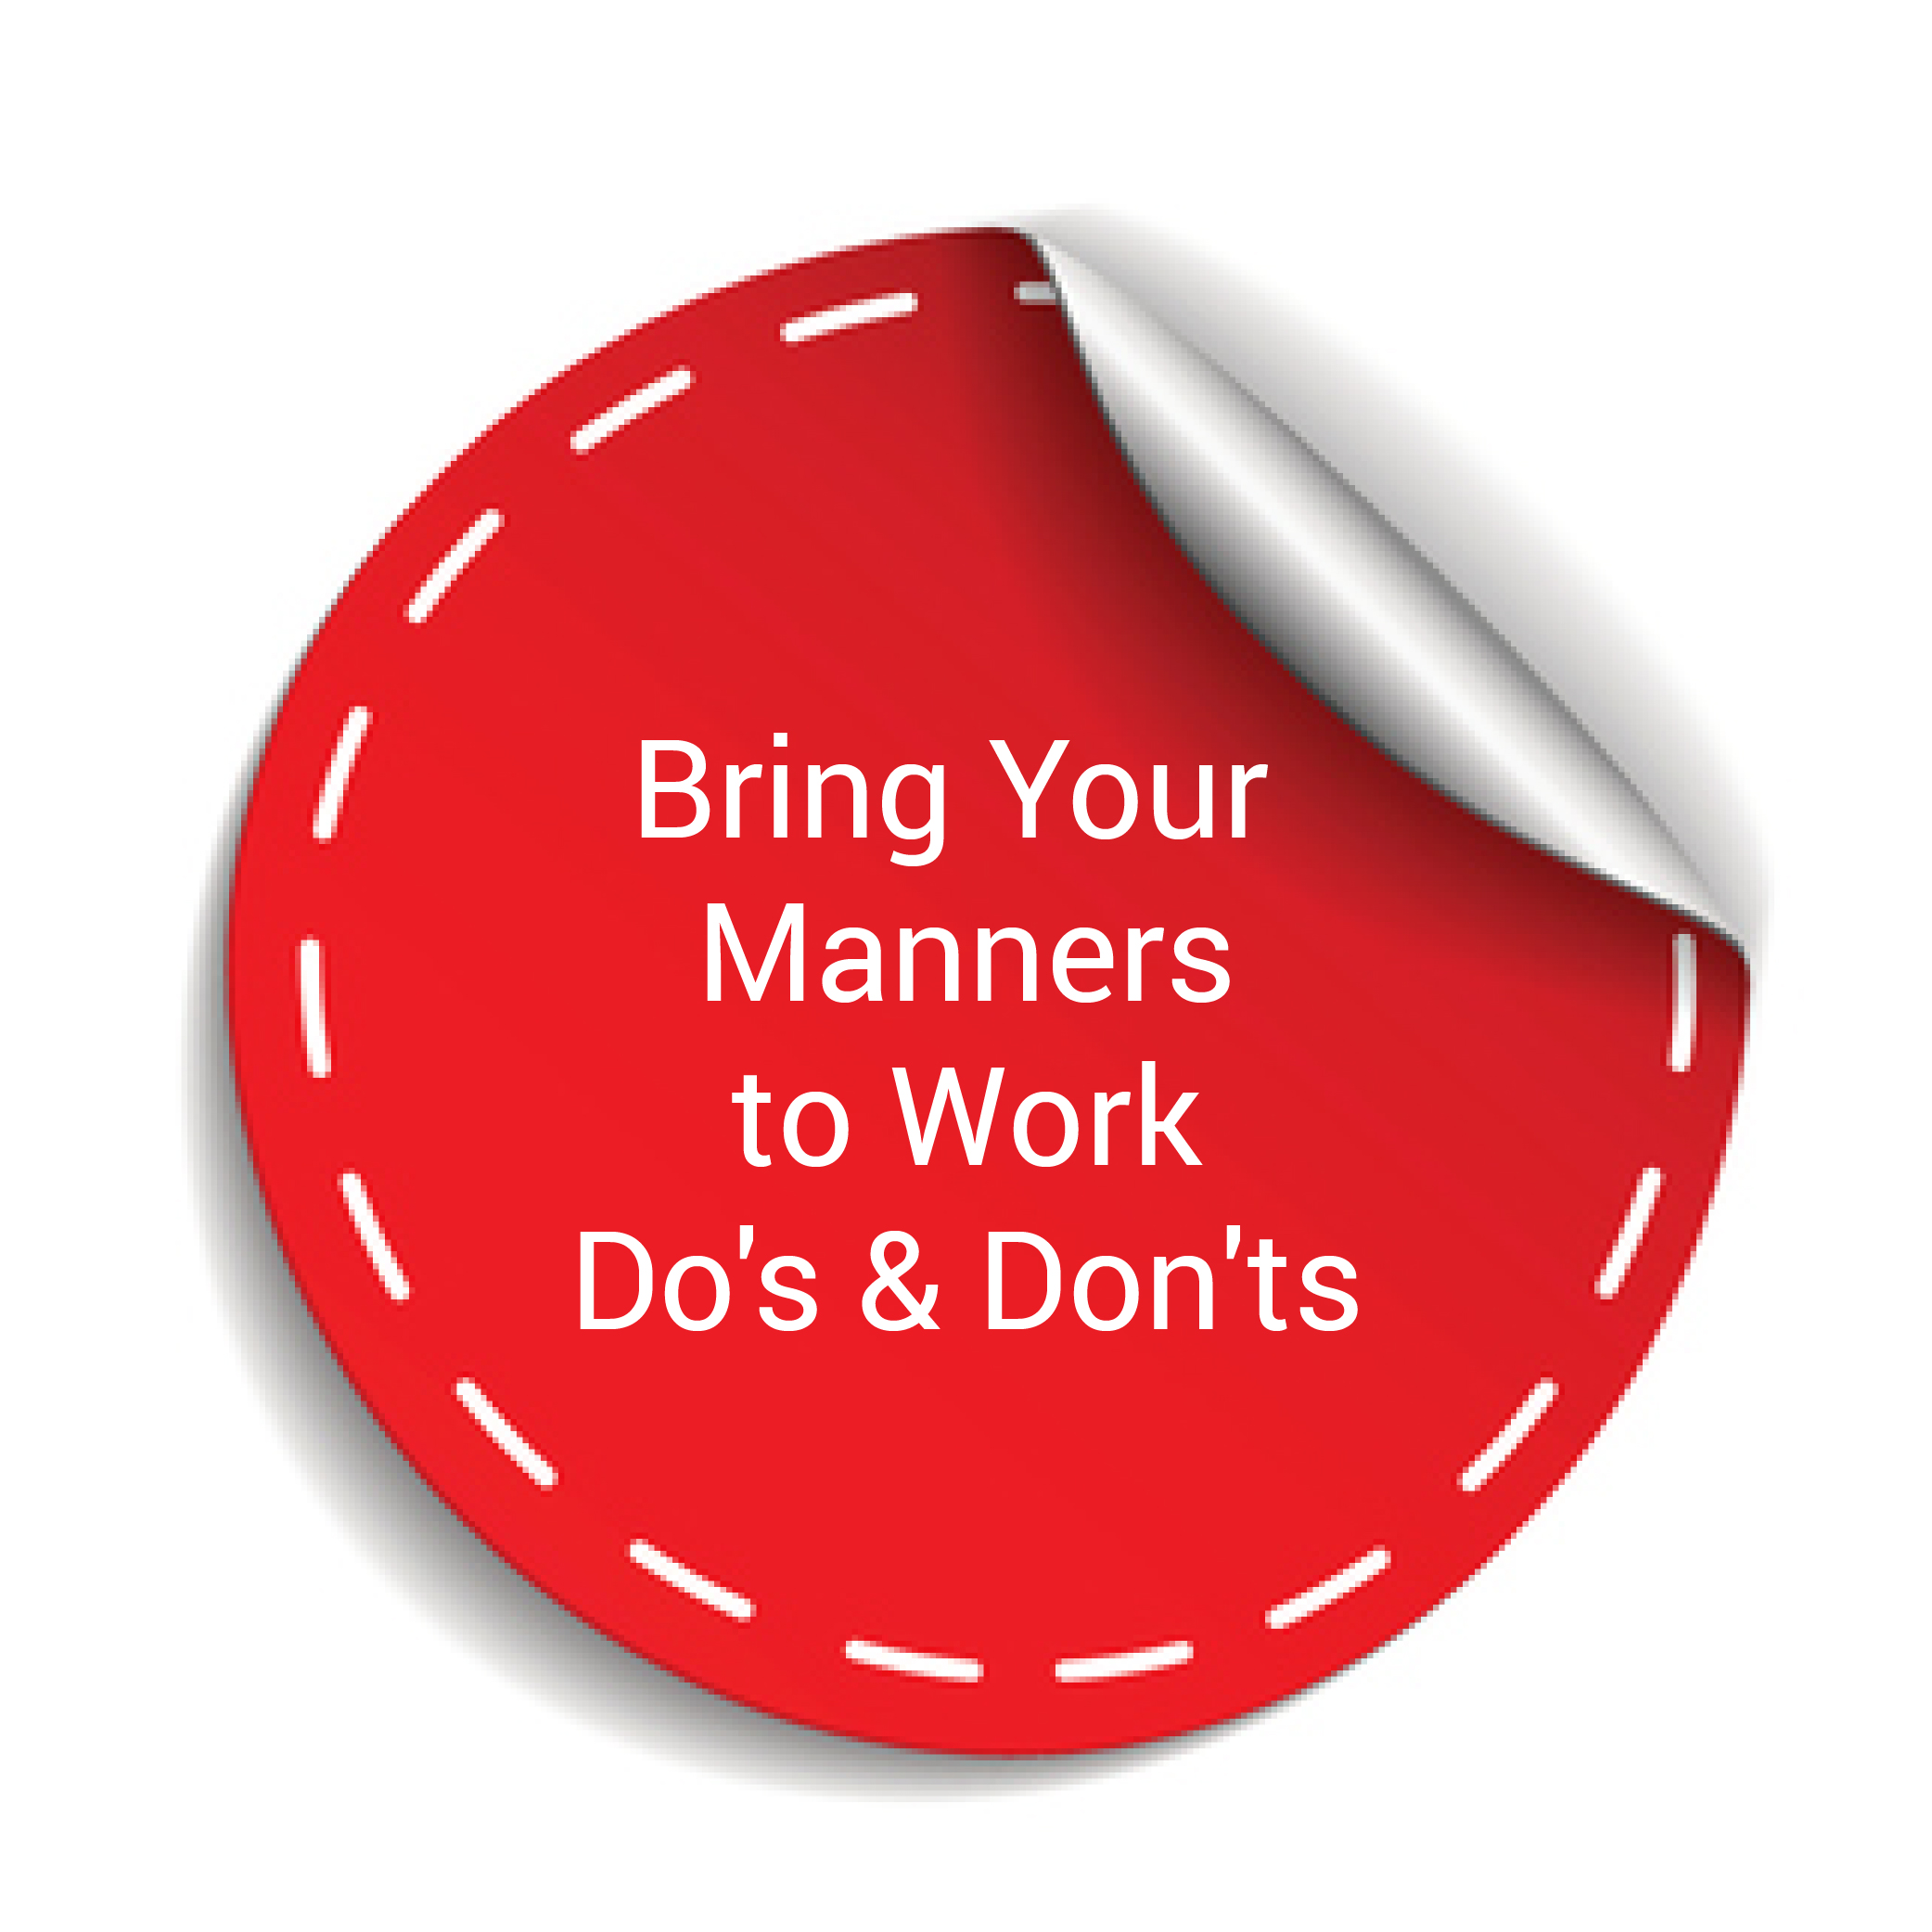 Bring Your Manners to Work Do's and Don'ts